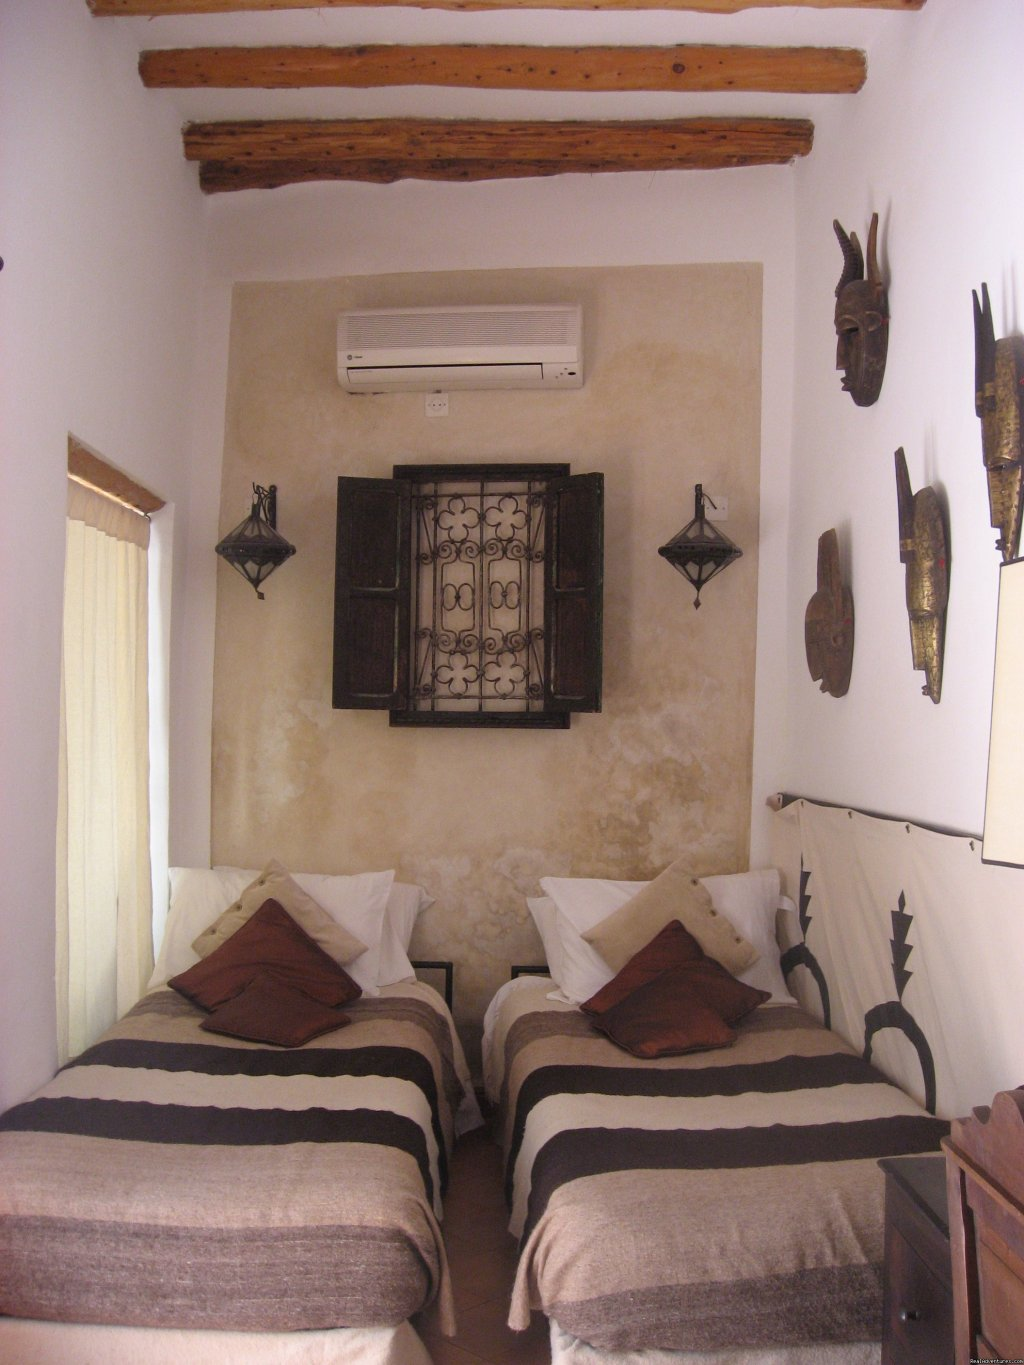 Stunning three bedroom renovated riad located in the heart of Marrakech's medina.